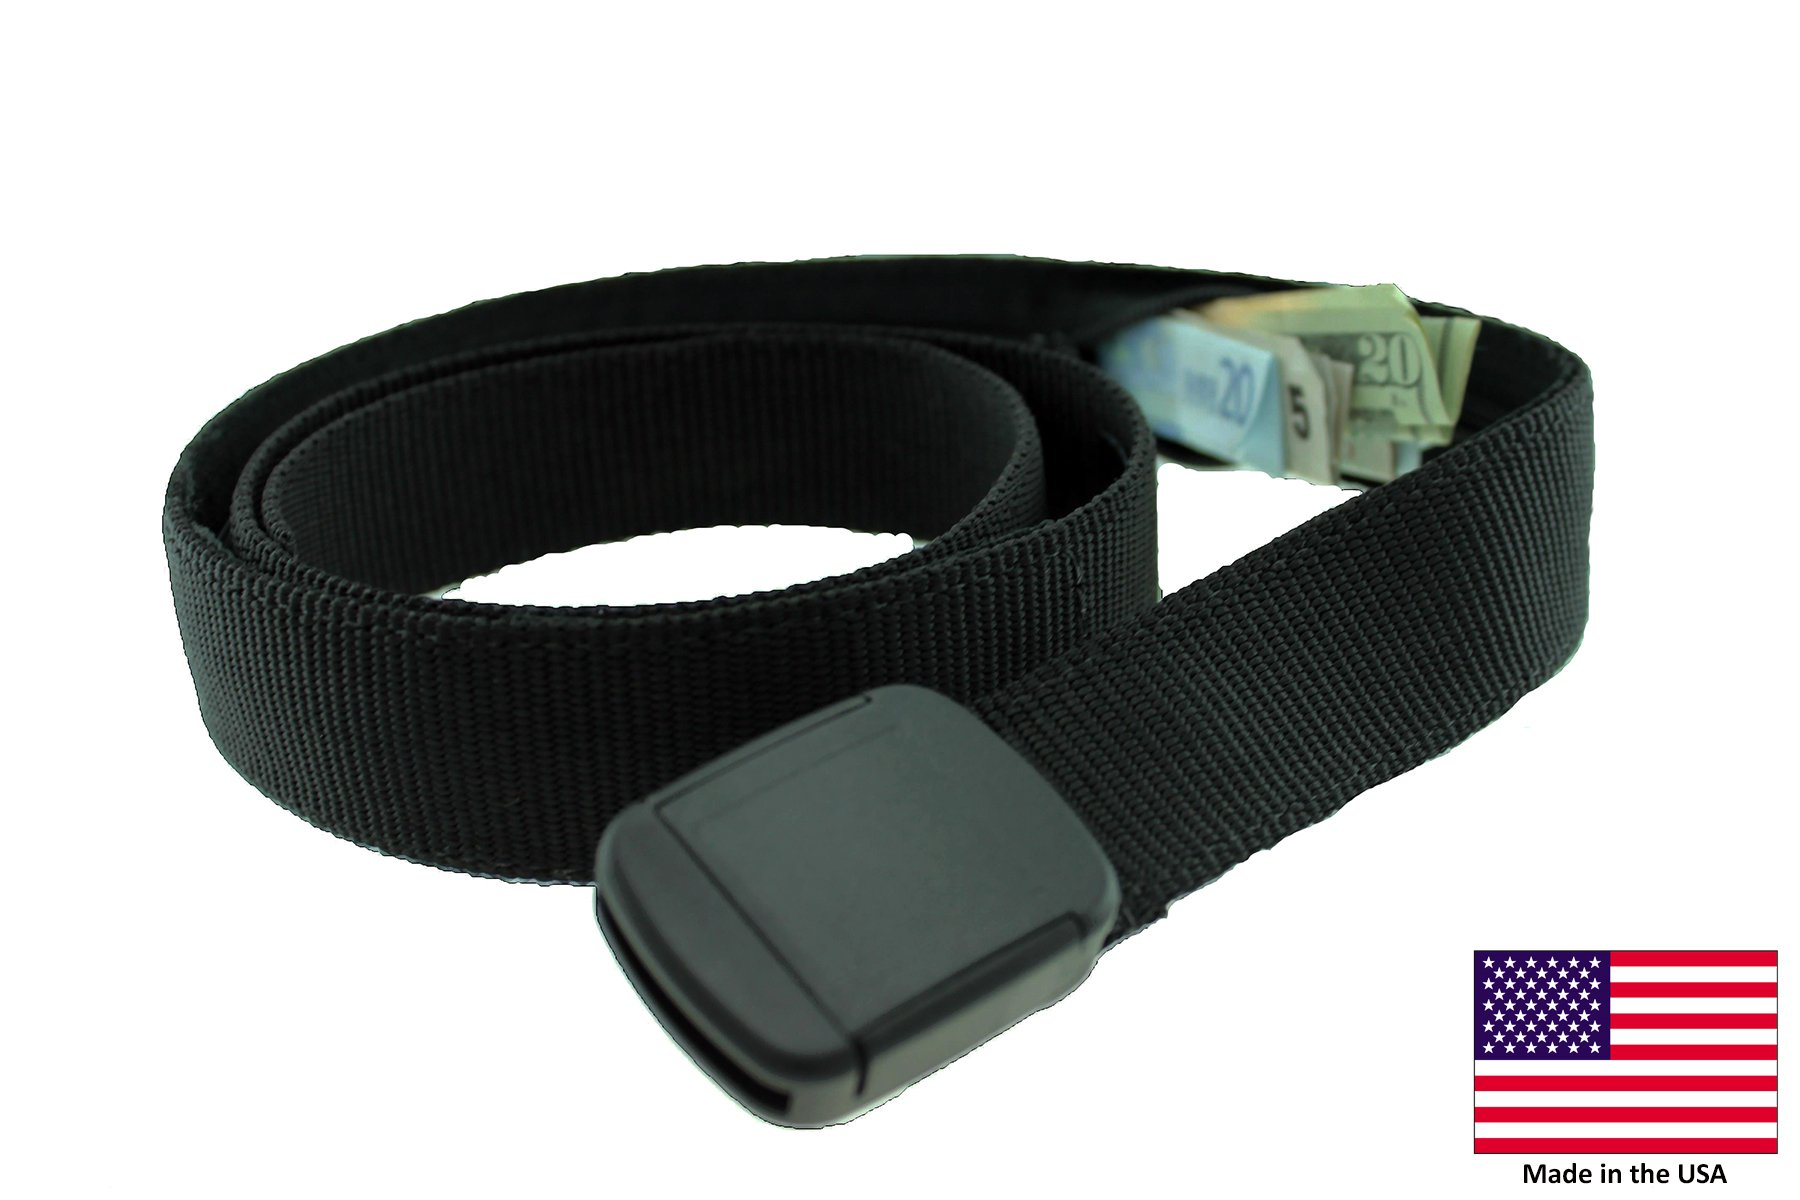 Hiker Money Belt Made in USA by Thomas Bates (Black)